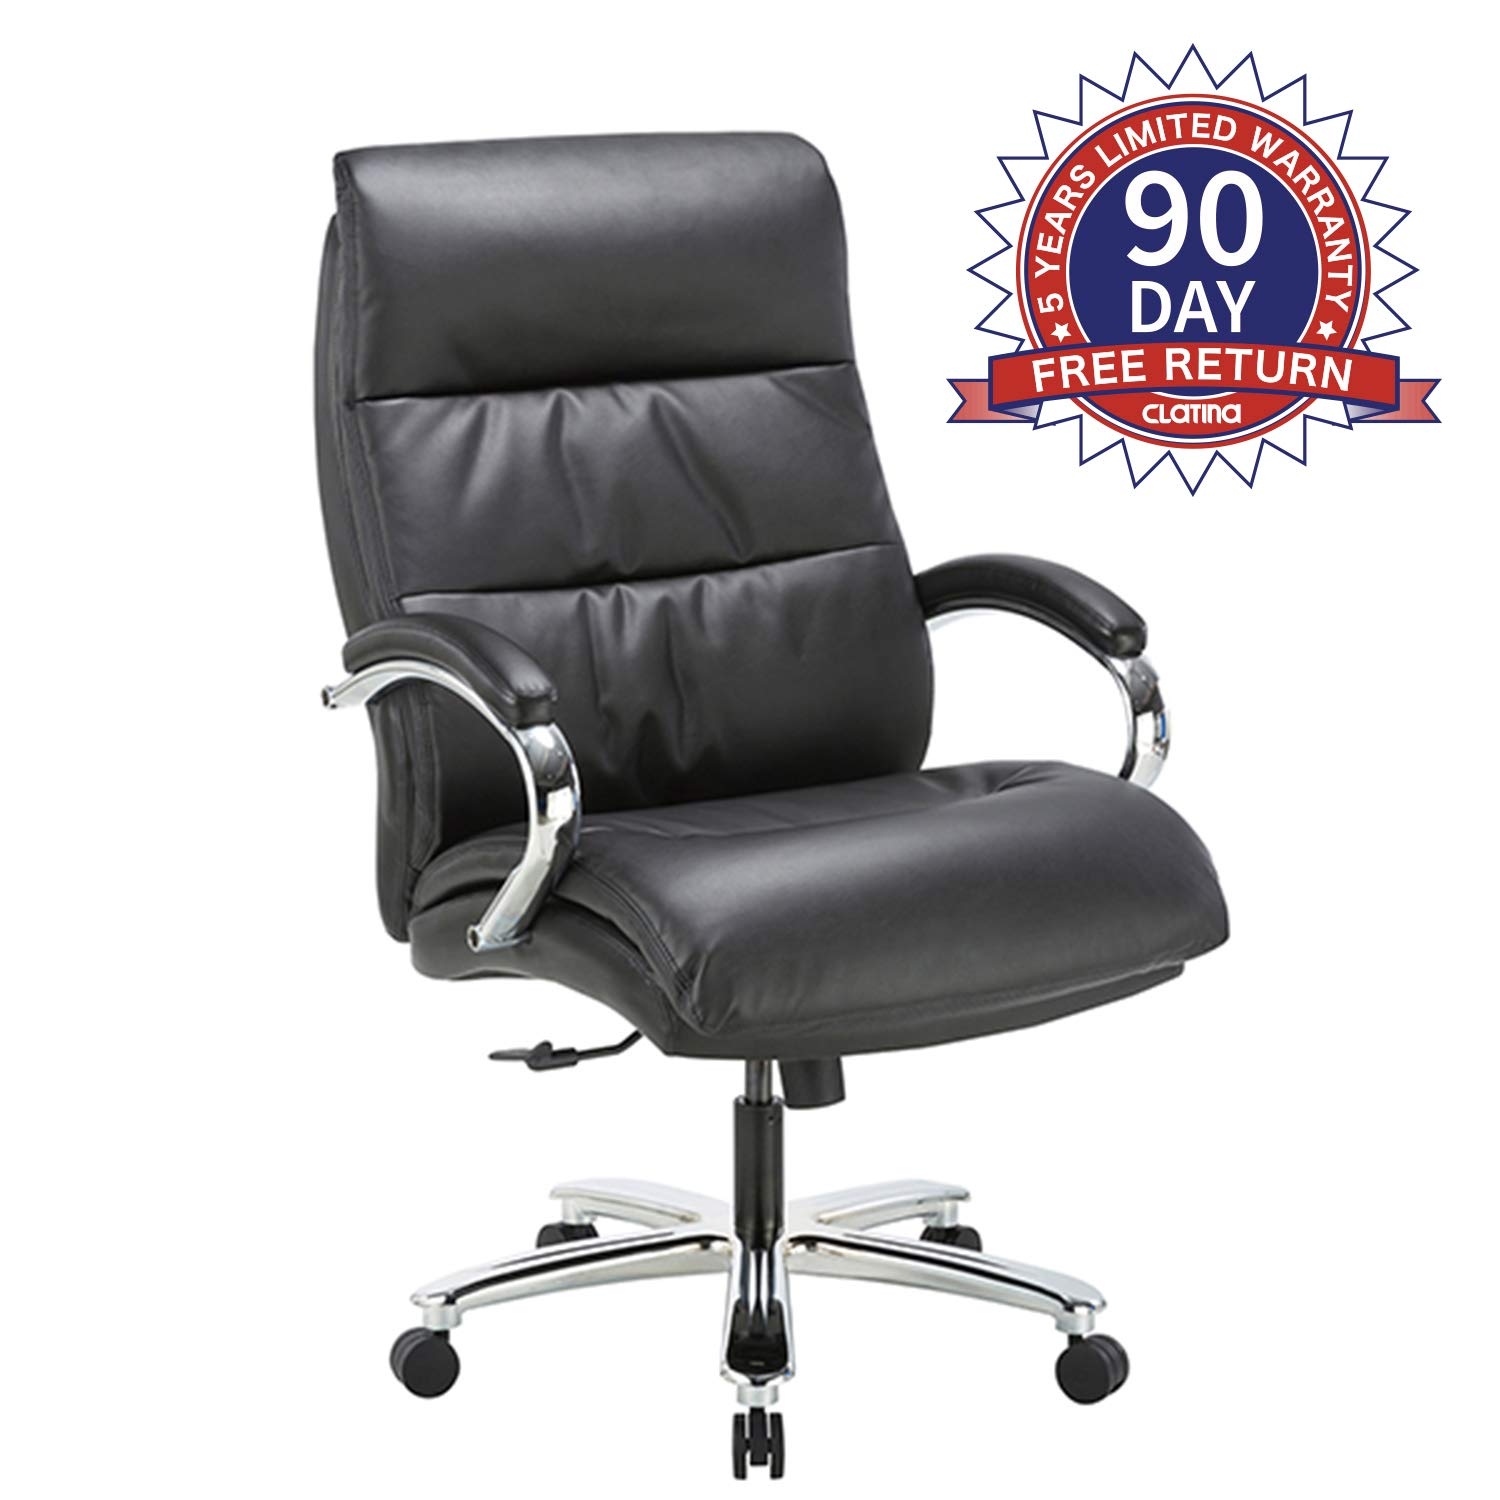 Ergonomic Big & Tall Executive Office Chair with Bonded Leather 400lbs High Capacity Swivel Adjustable Height Thick Padding Headrest and Armrest for Home Office Black